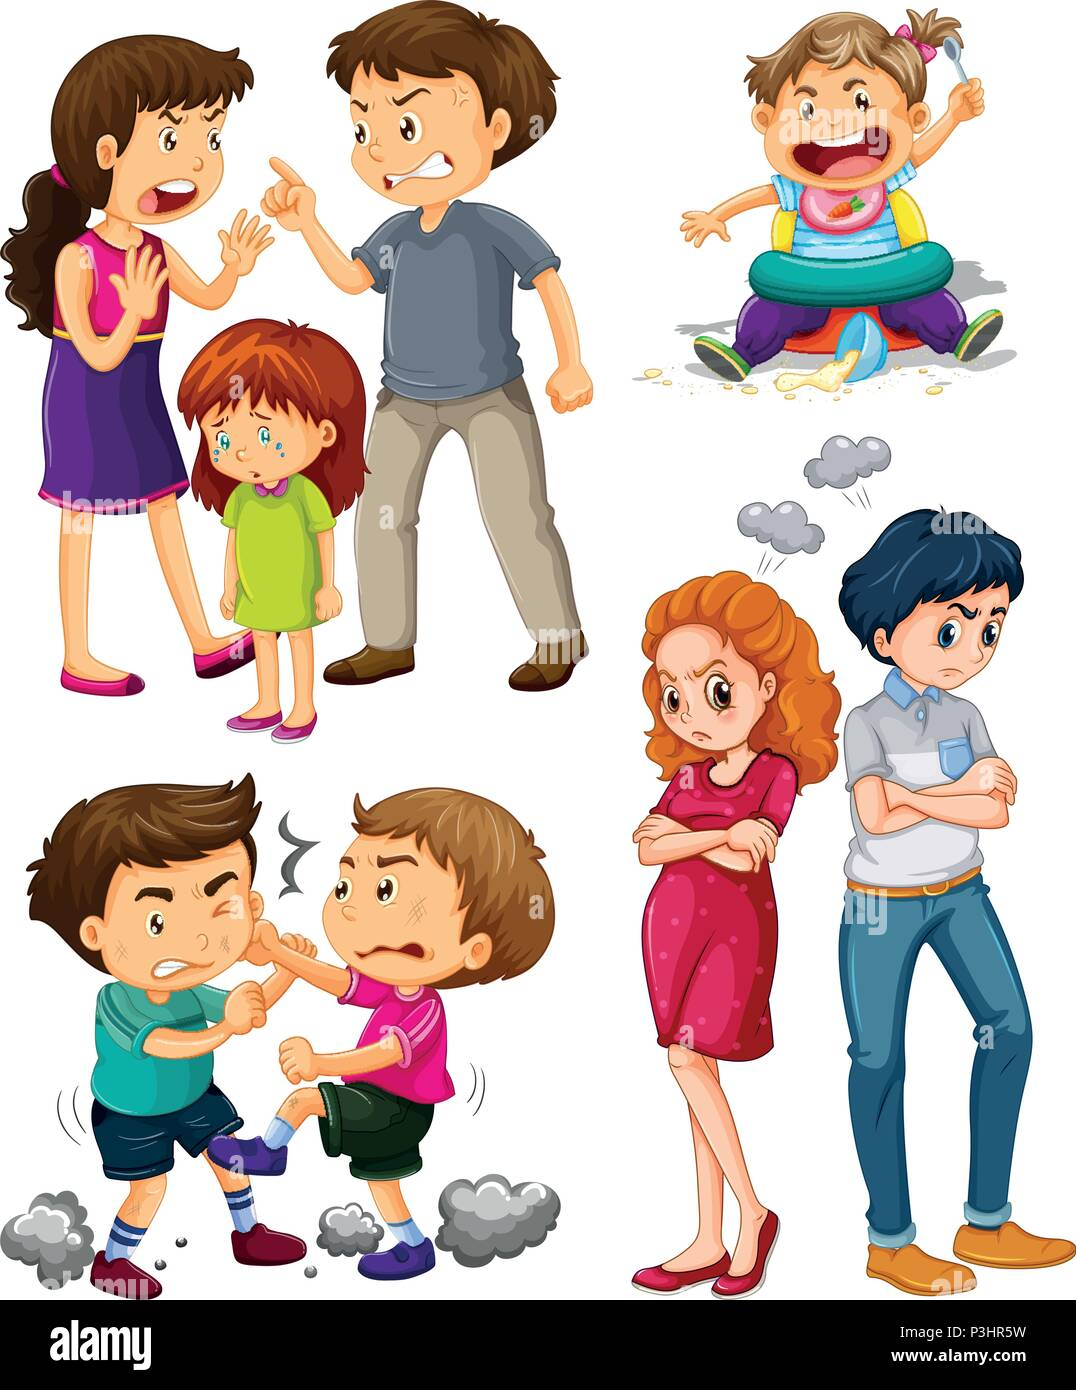 A Set Of People Fighting Illustration Stock Vector Image Art Alamy